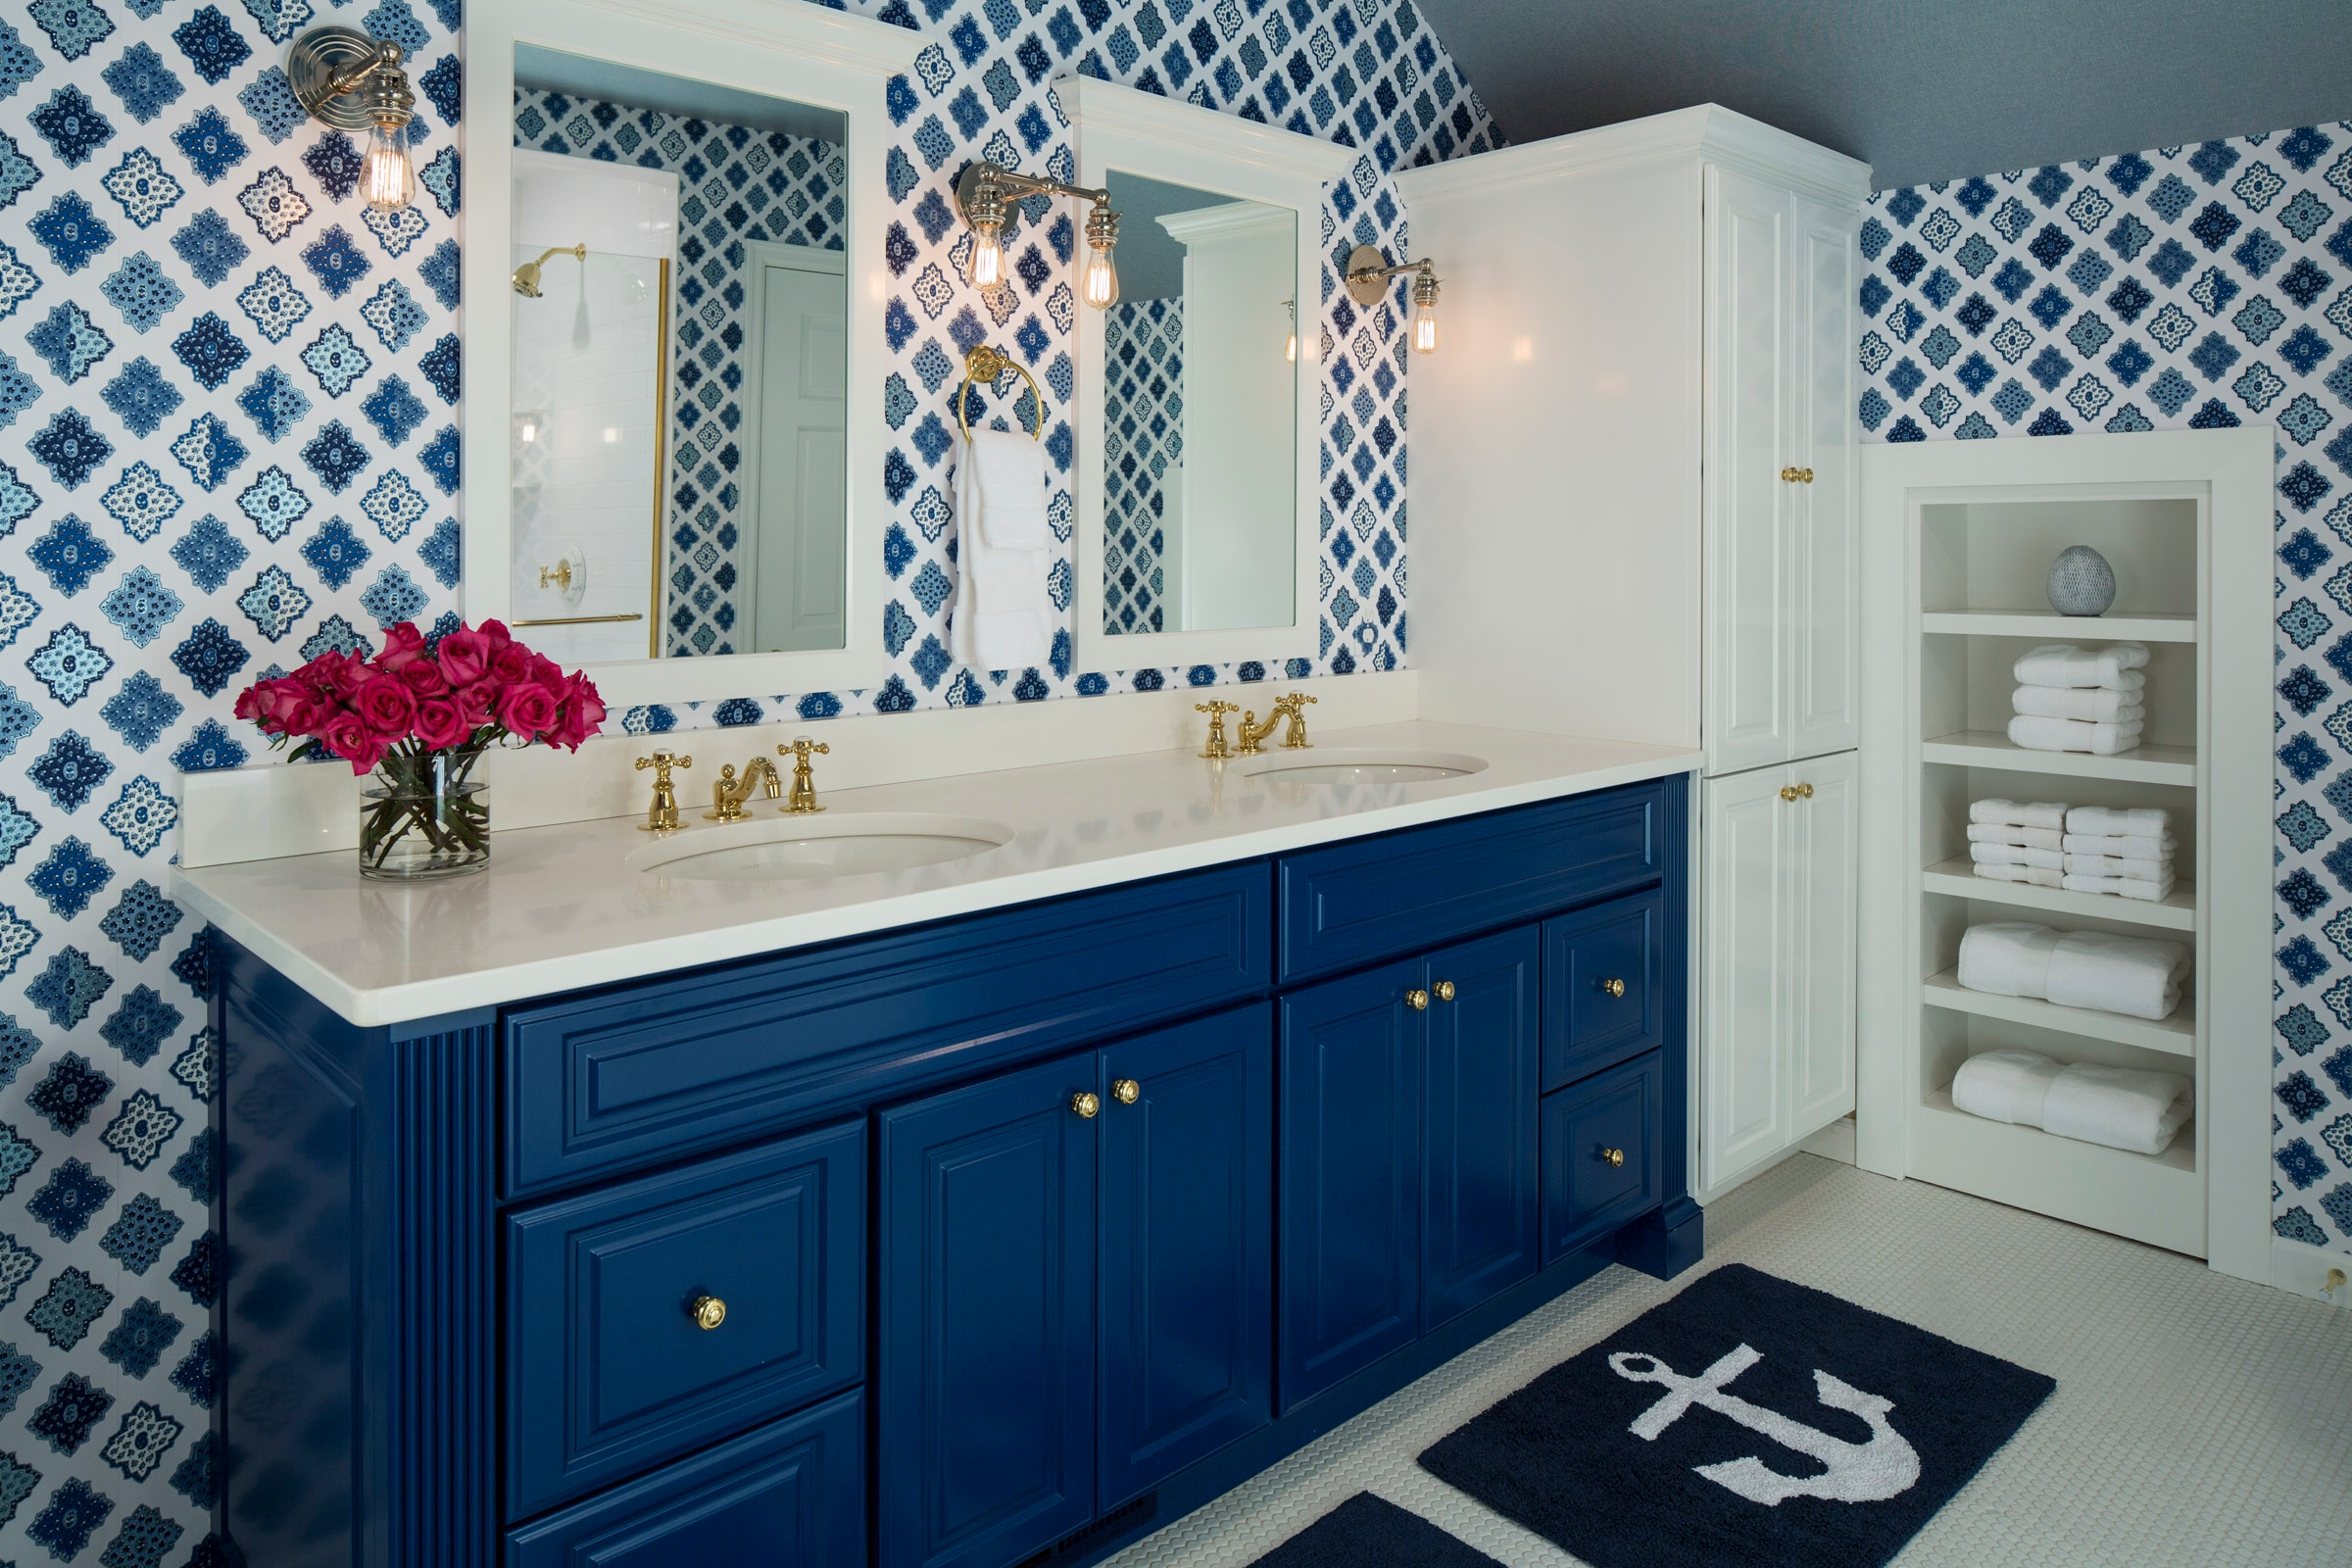 11 Quick Upgrades To Give Your Bathroom Before Holiday Company ...